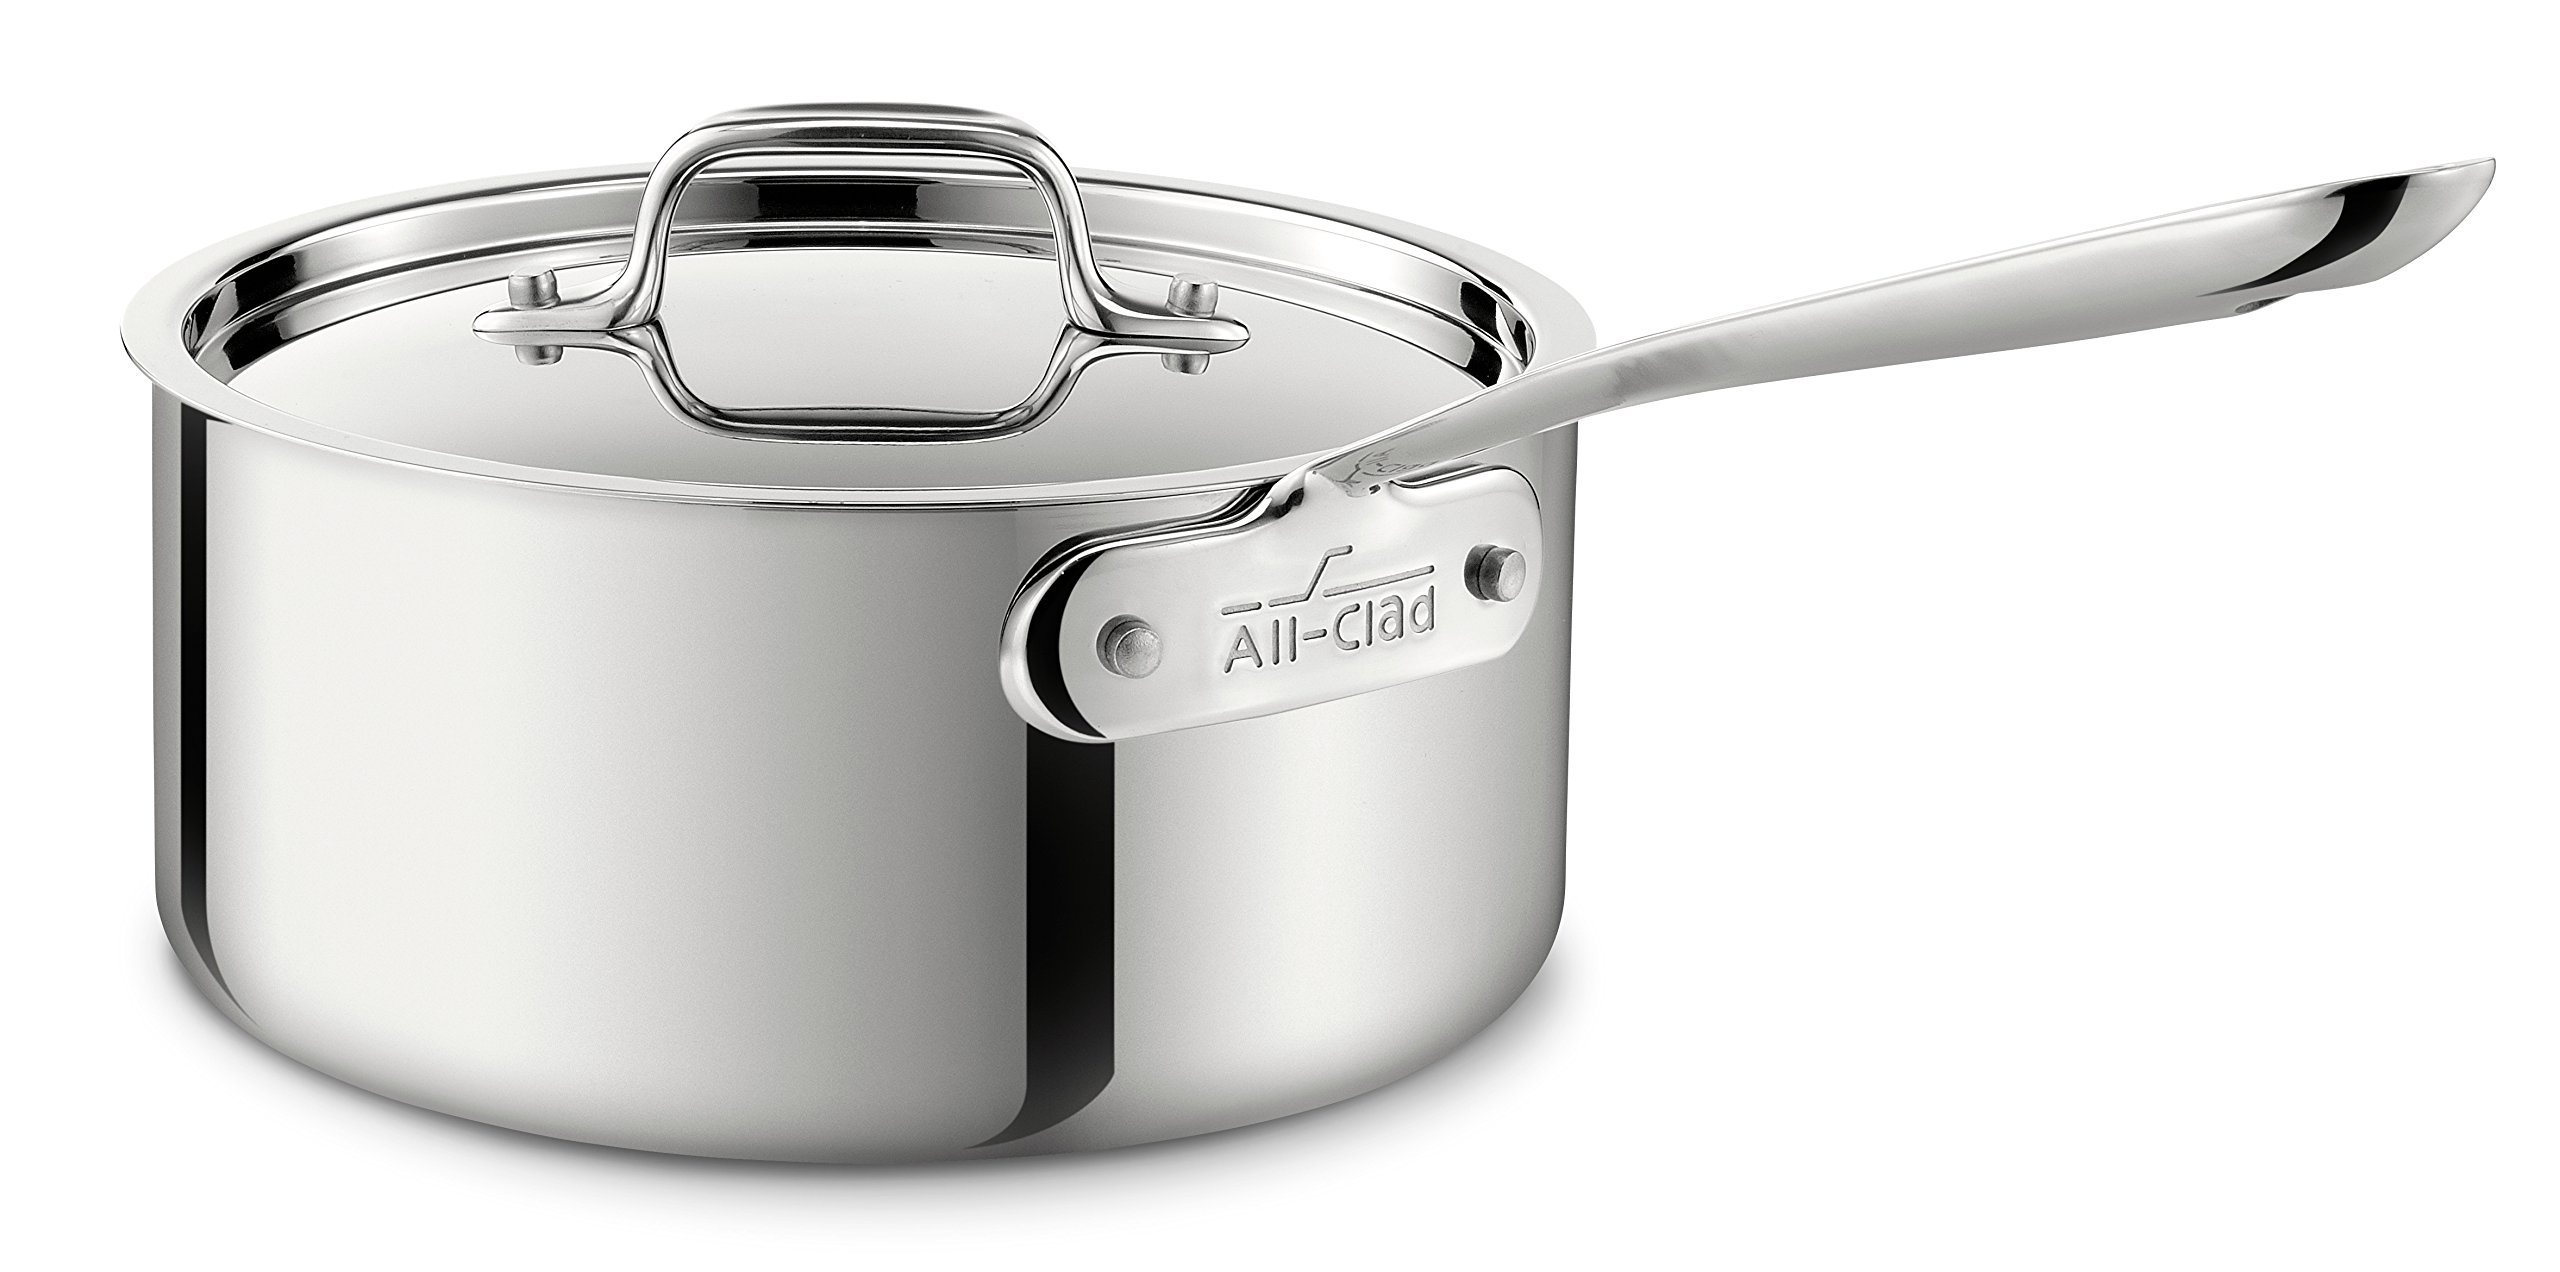 All-Clad 4203 Stainless Steel Tri-Ply Bonded Dishwasher Safe Sauce Pan with Lid / Cookware, 3-Quart, Silver by All-Clad